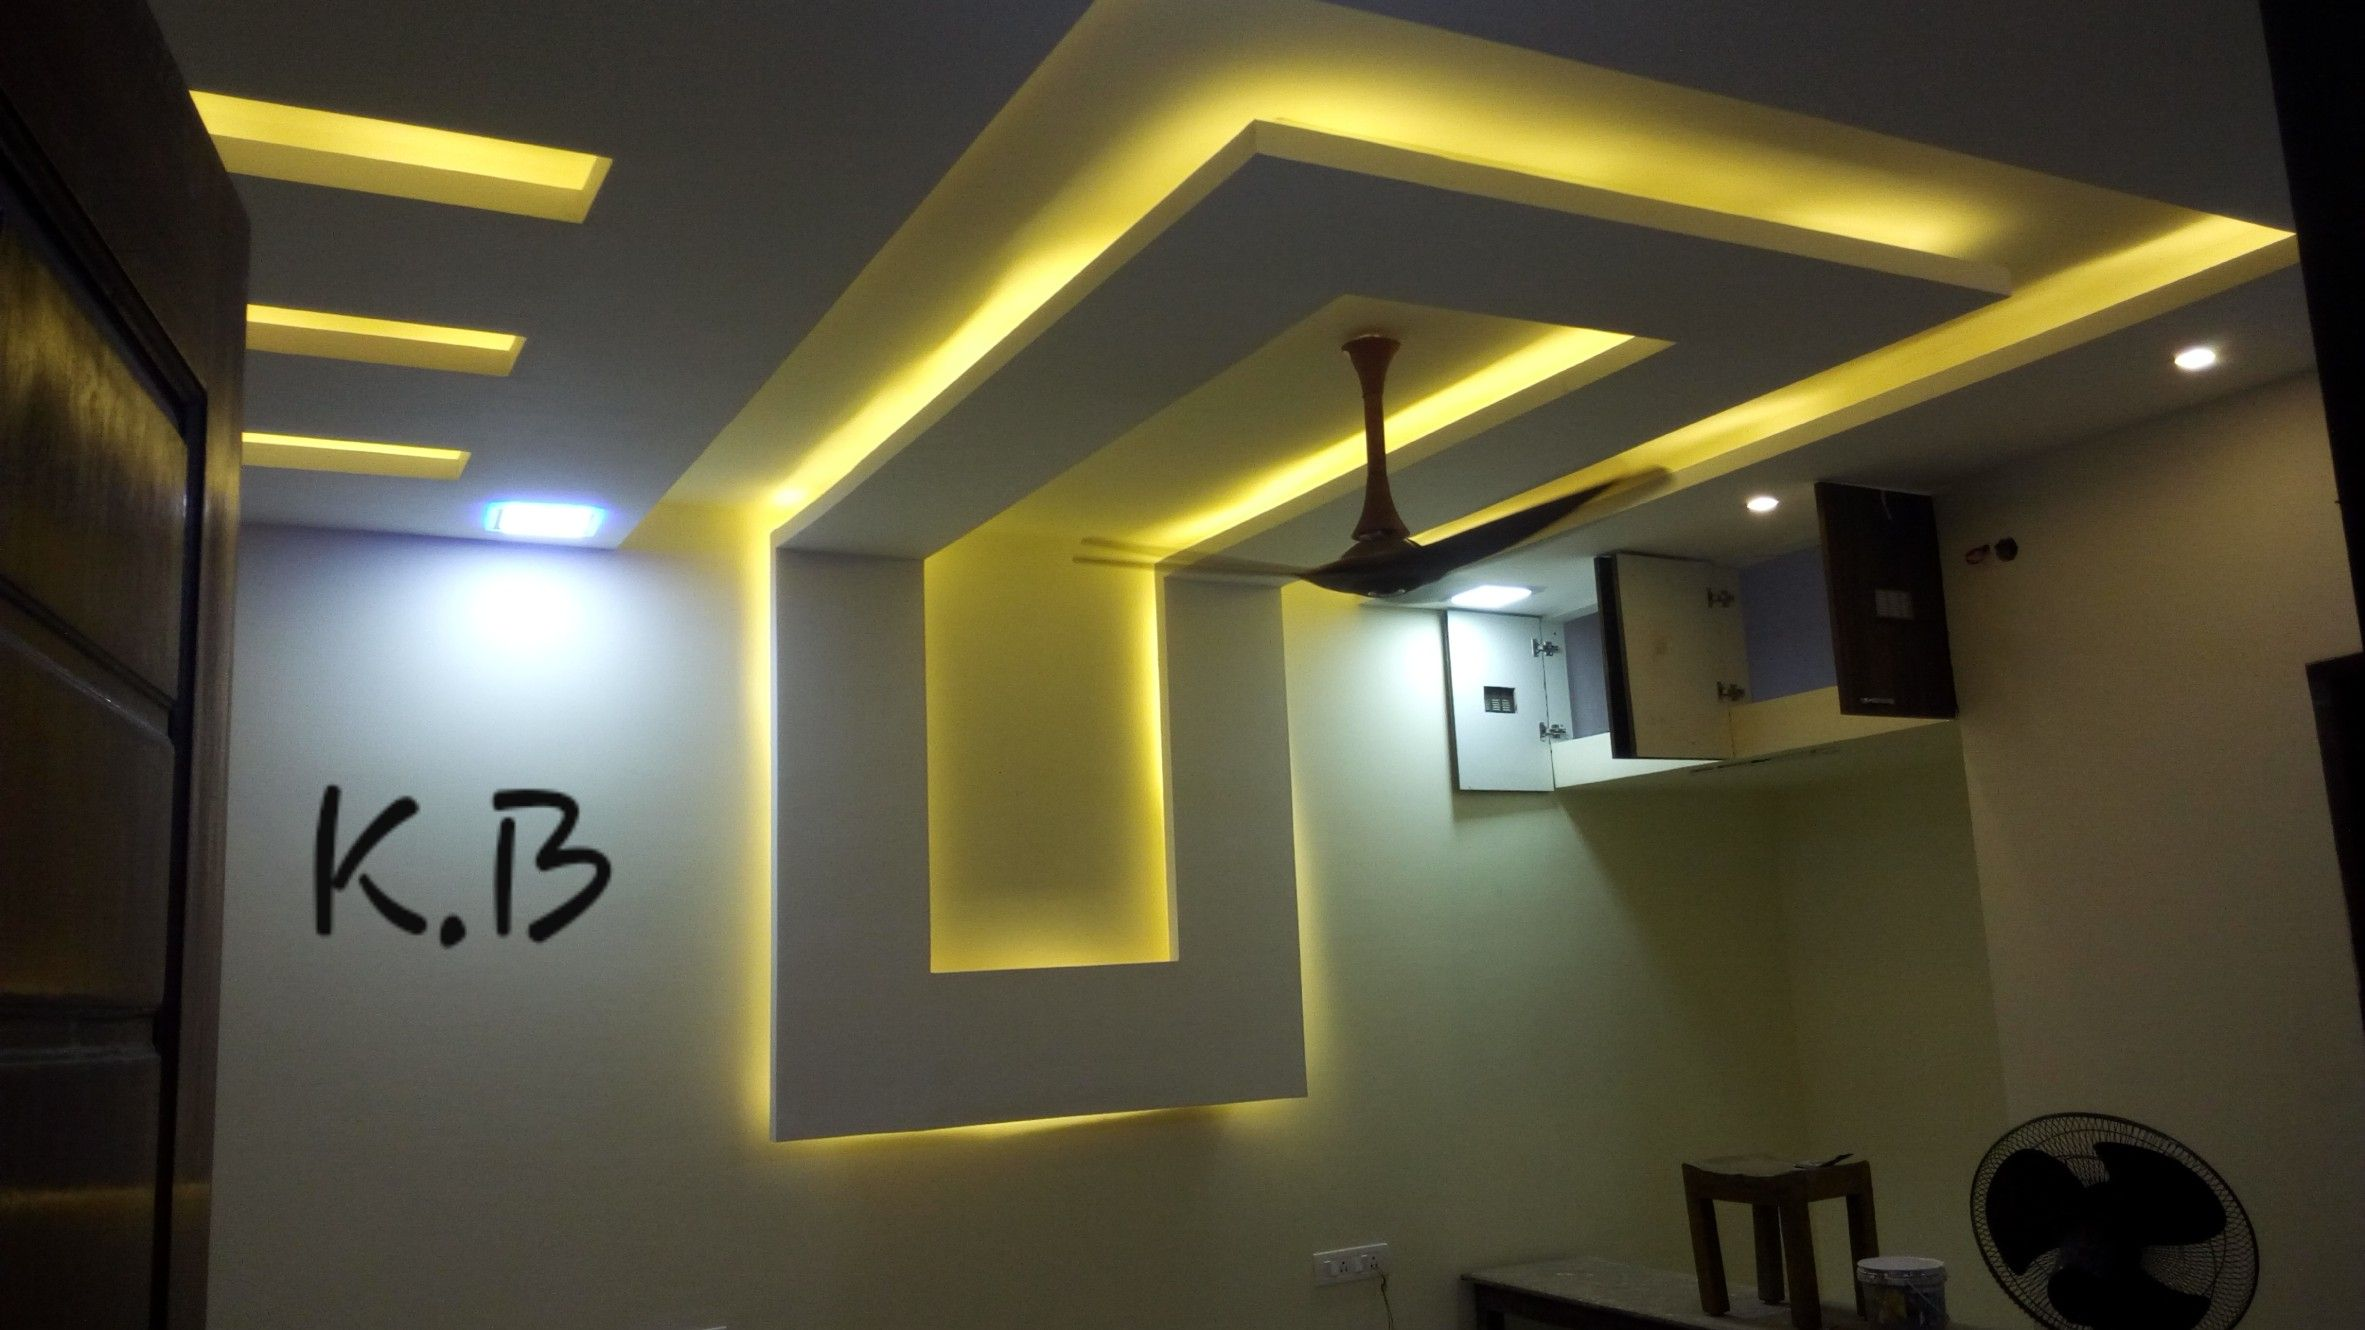 Fall Ceiling Bedroom False Ceiling Design Pharmacy Design False Ceiling Design